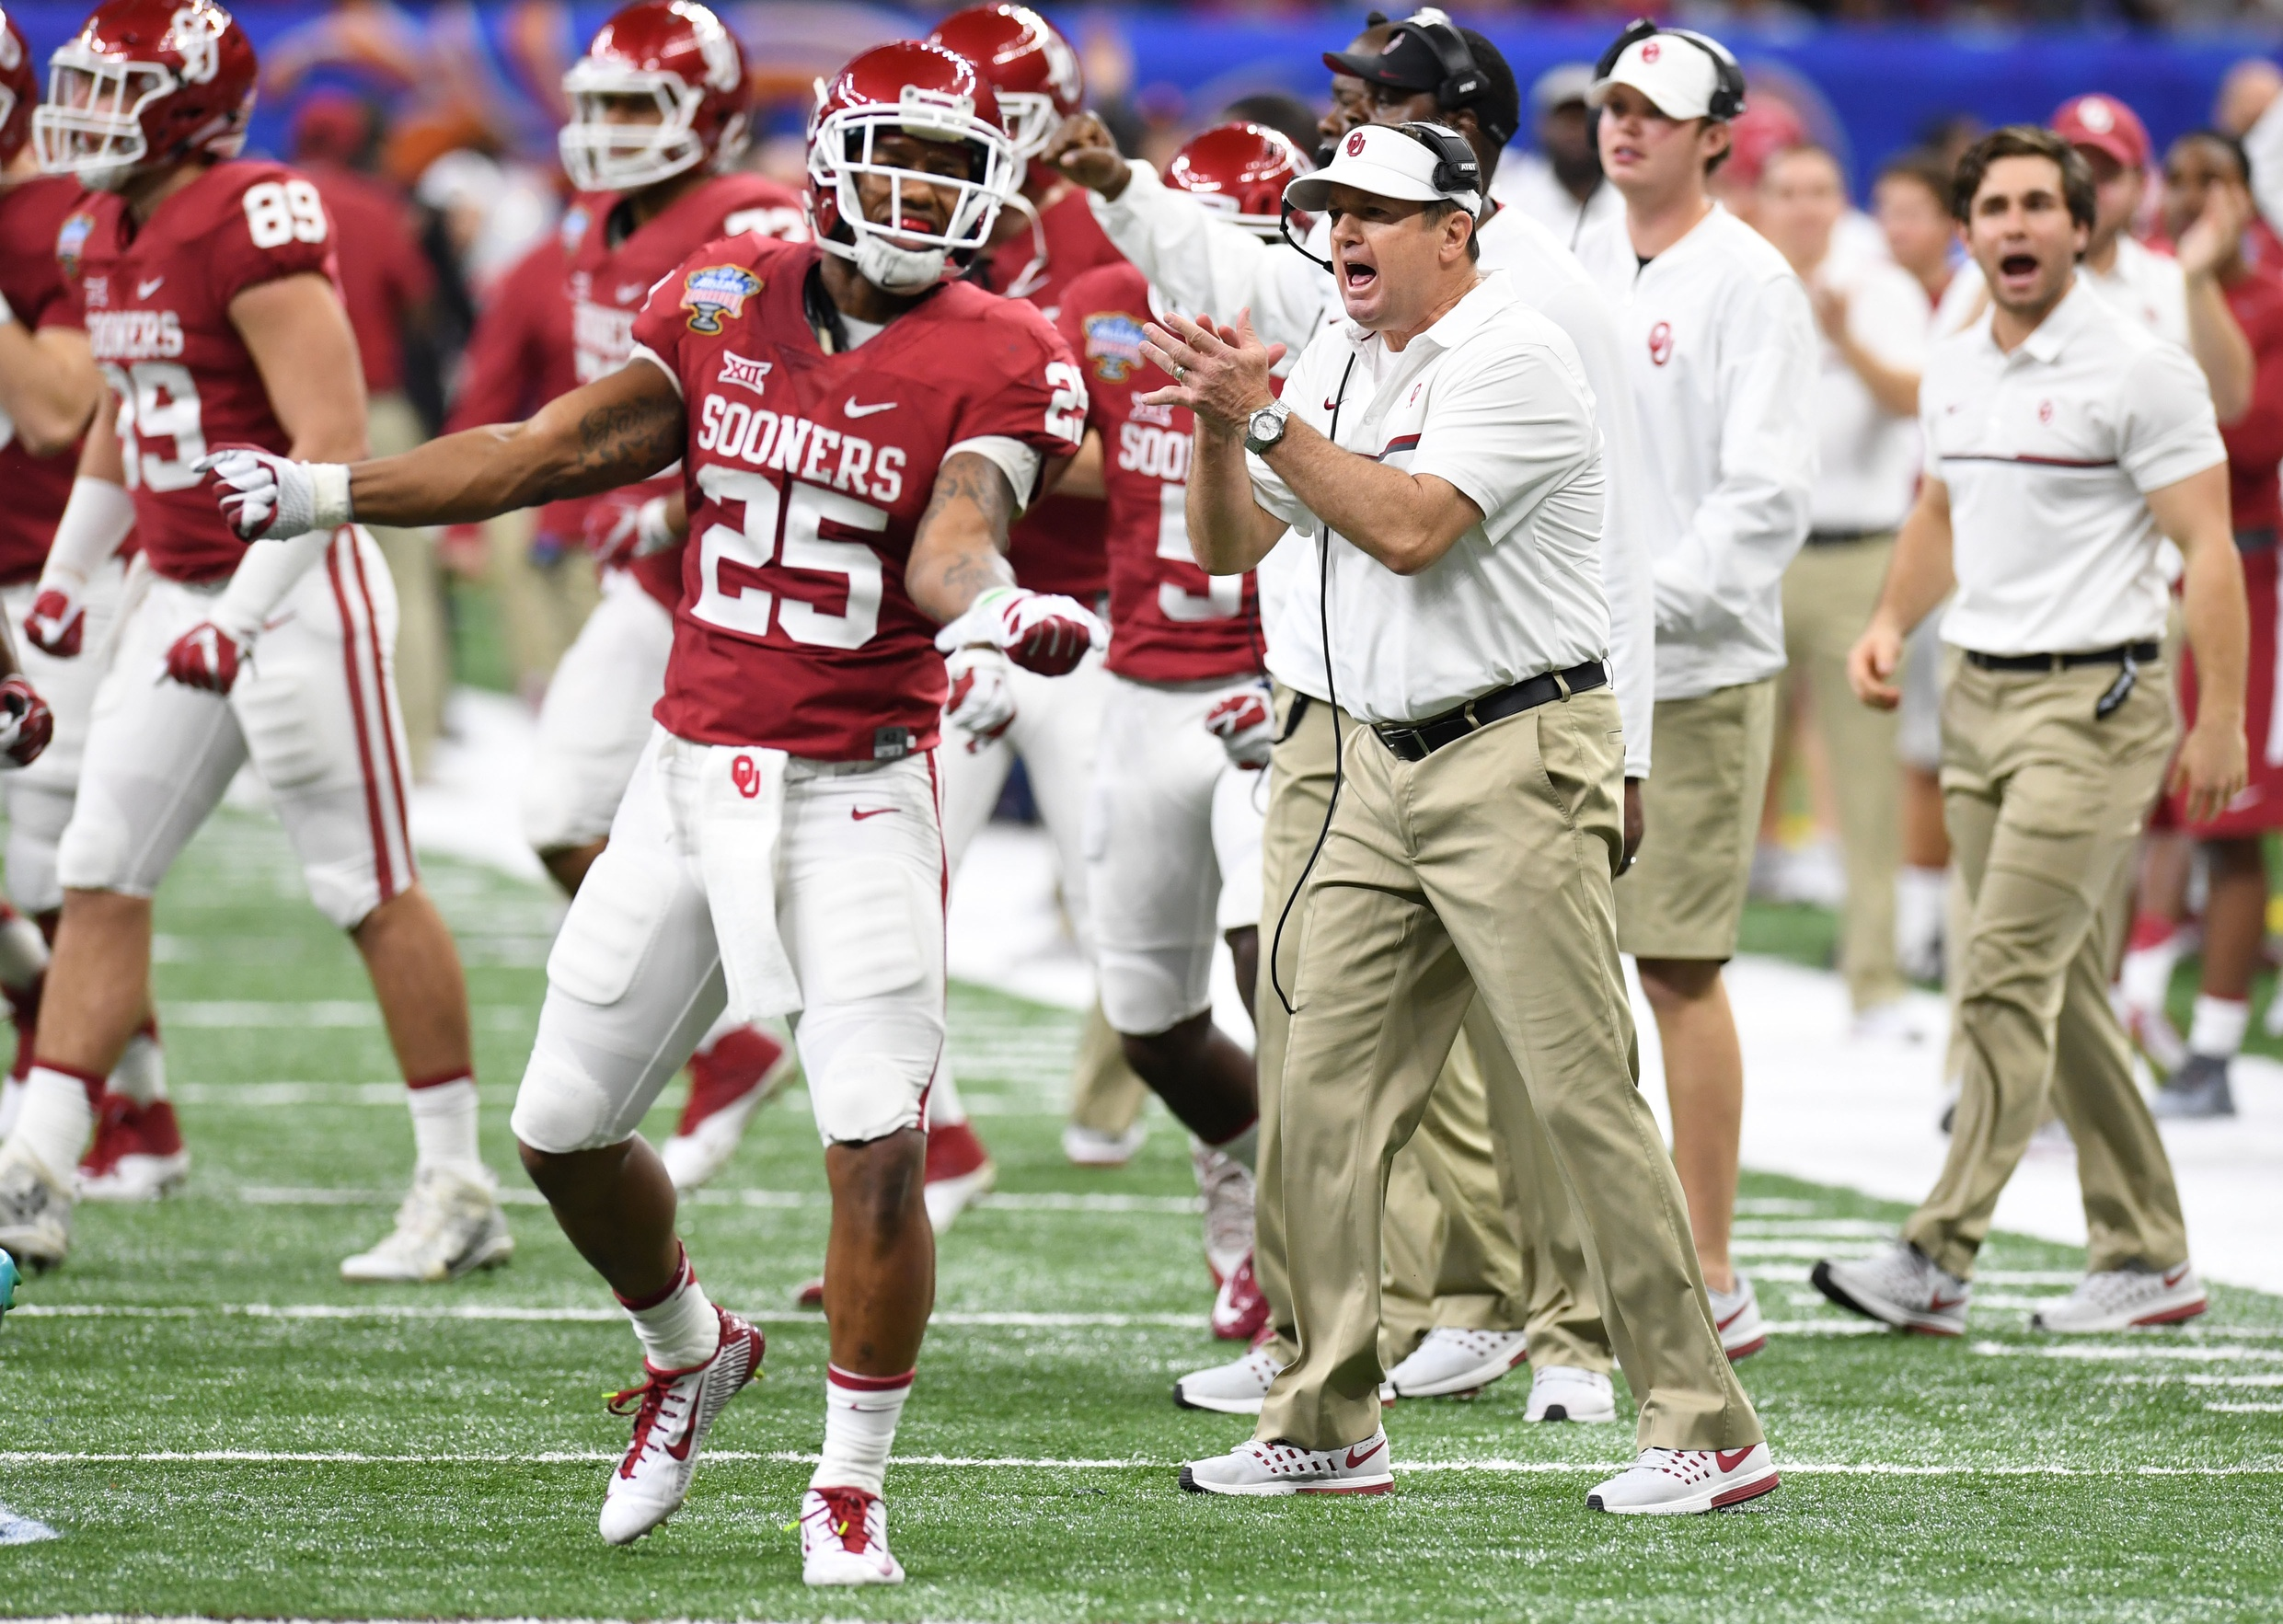 Jan 2, 2017; New Orleans , LA, USA; Oklahoma Sooners running back Joe Mixon (25) and Sooners head coach Bob Stoops react after a stop against the Auburn Tigers in the second quarter of the 2017 Sugar Bowl at the Mercedes-Benz Superdome. Mandatory Credit: John David Mercer-USA TODAY Sports